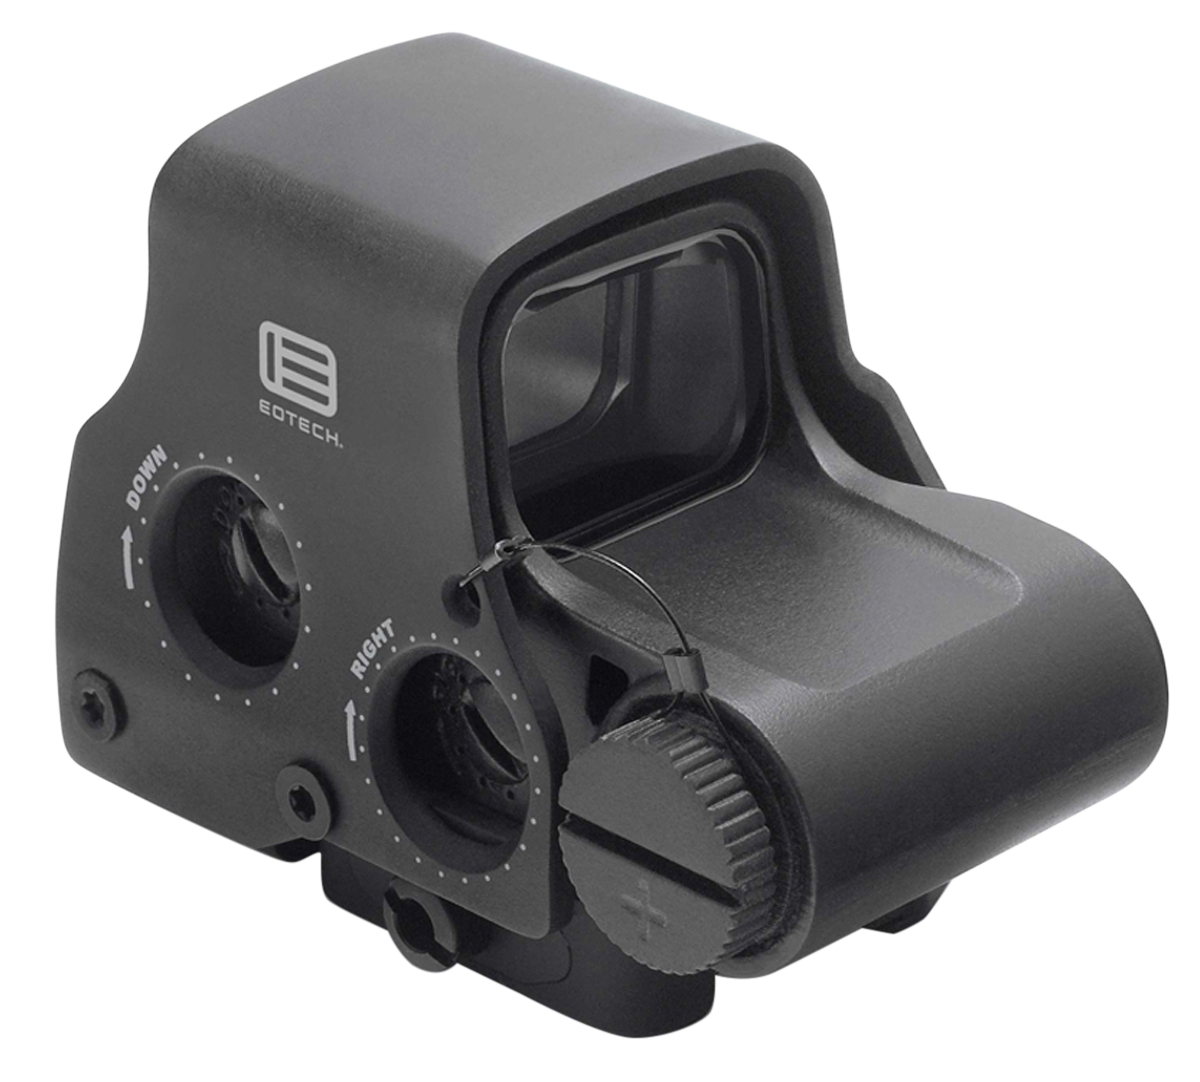 Eotech EXPS20 EXPS2-0 Holographic Weapon Sight 1x 68 MOA Ring/1 MOA Dot Black